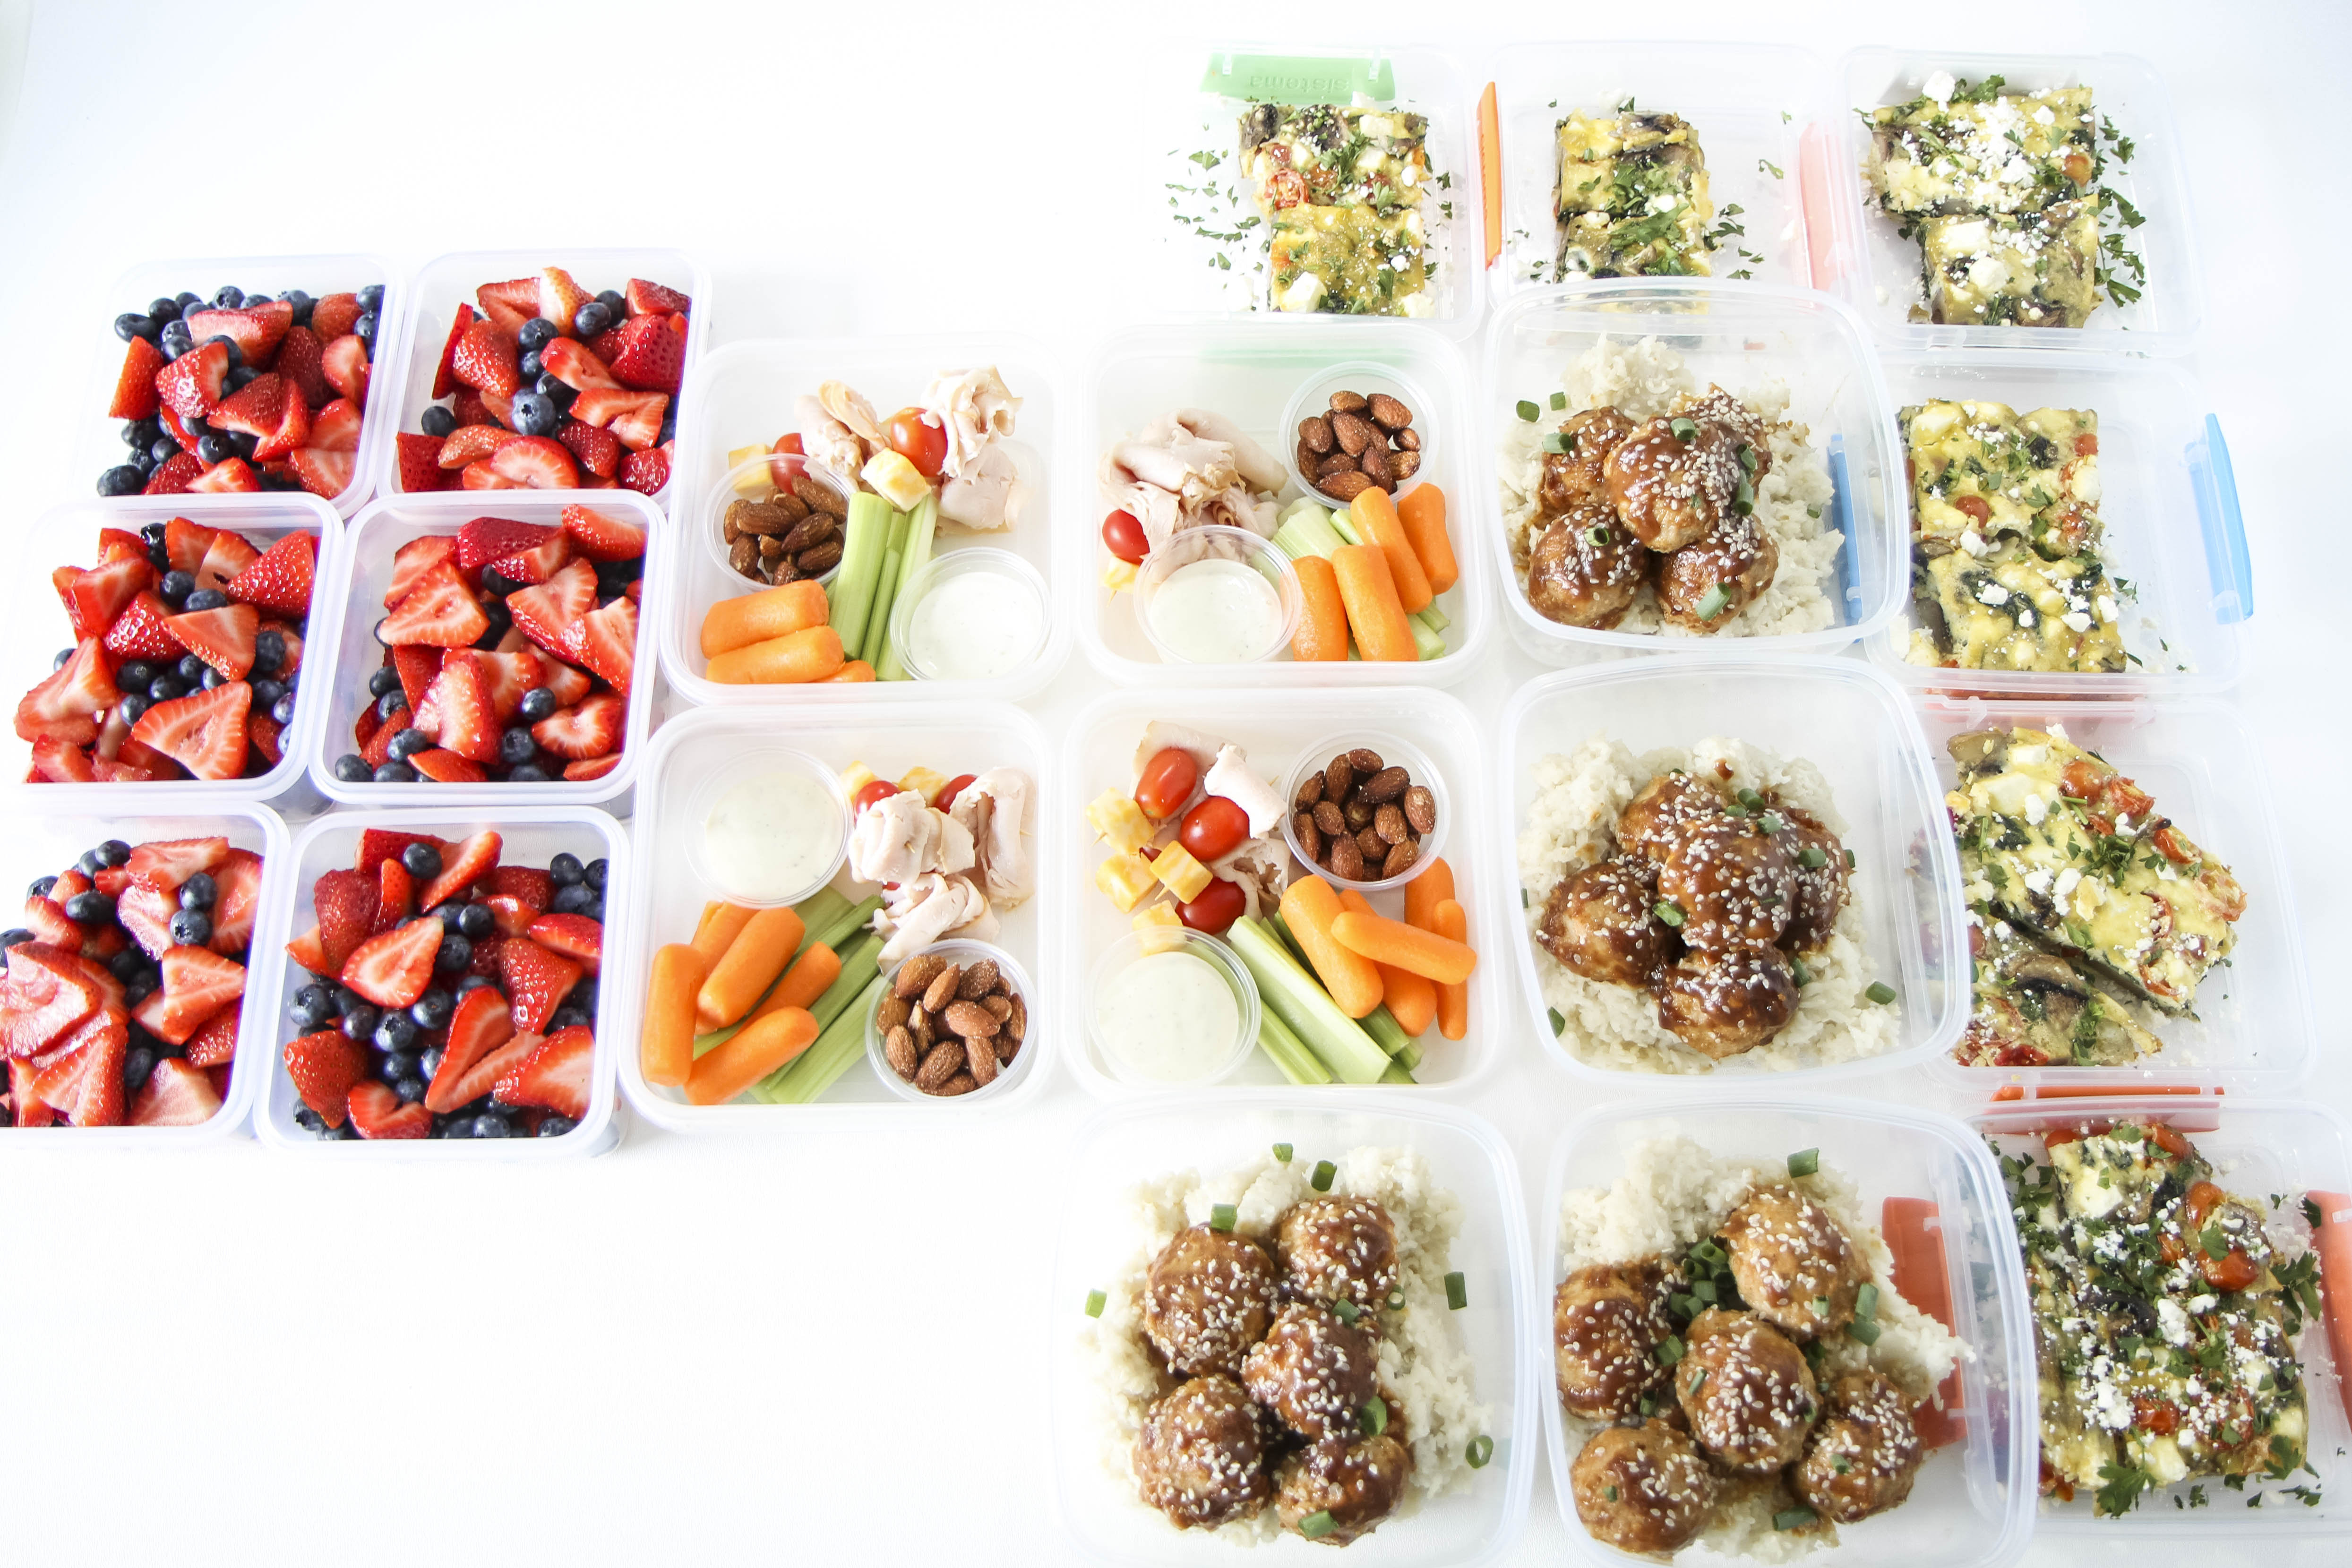 back-to-school lunch meal prep ideas from momadvice.com